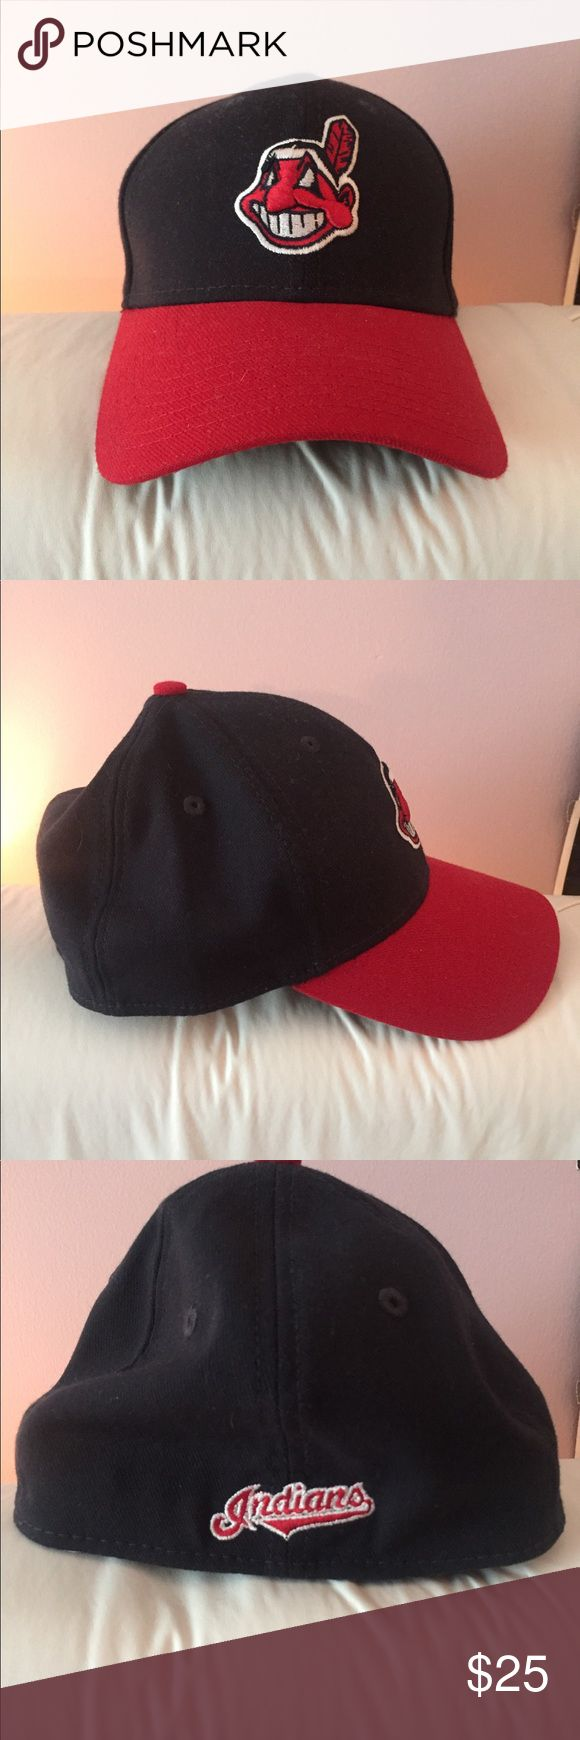 NEVER WORN Cleveland Indians Official Baseball Cap Official Cleveland Indians hat, navy blue with logo and red brim. One size fits most. Never worn! New Era Accessories Hats